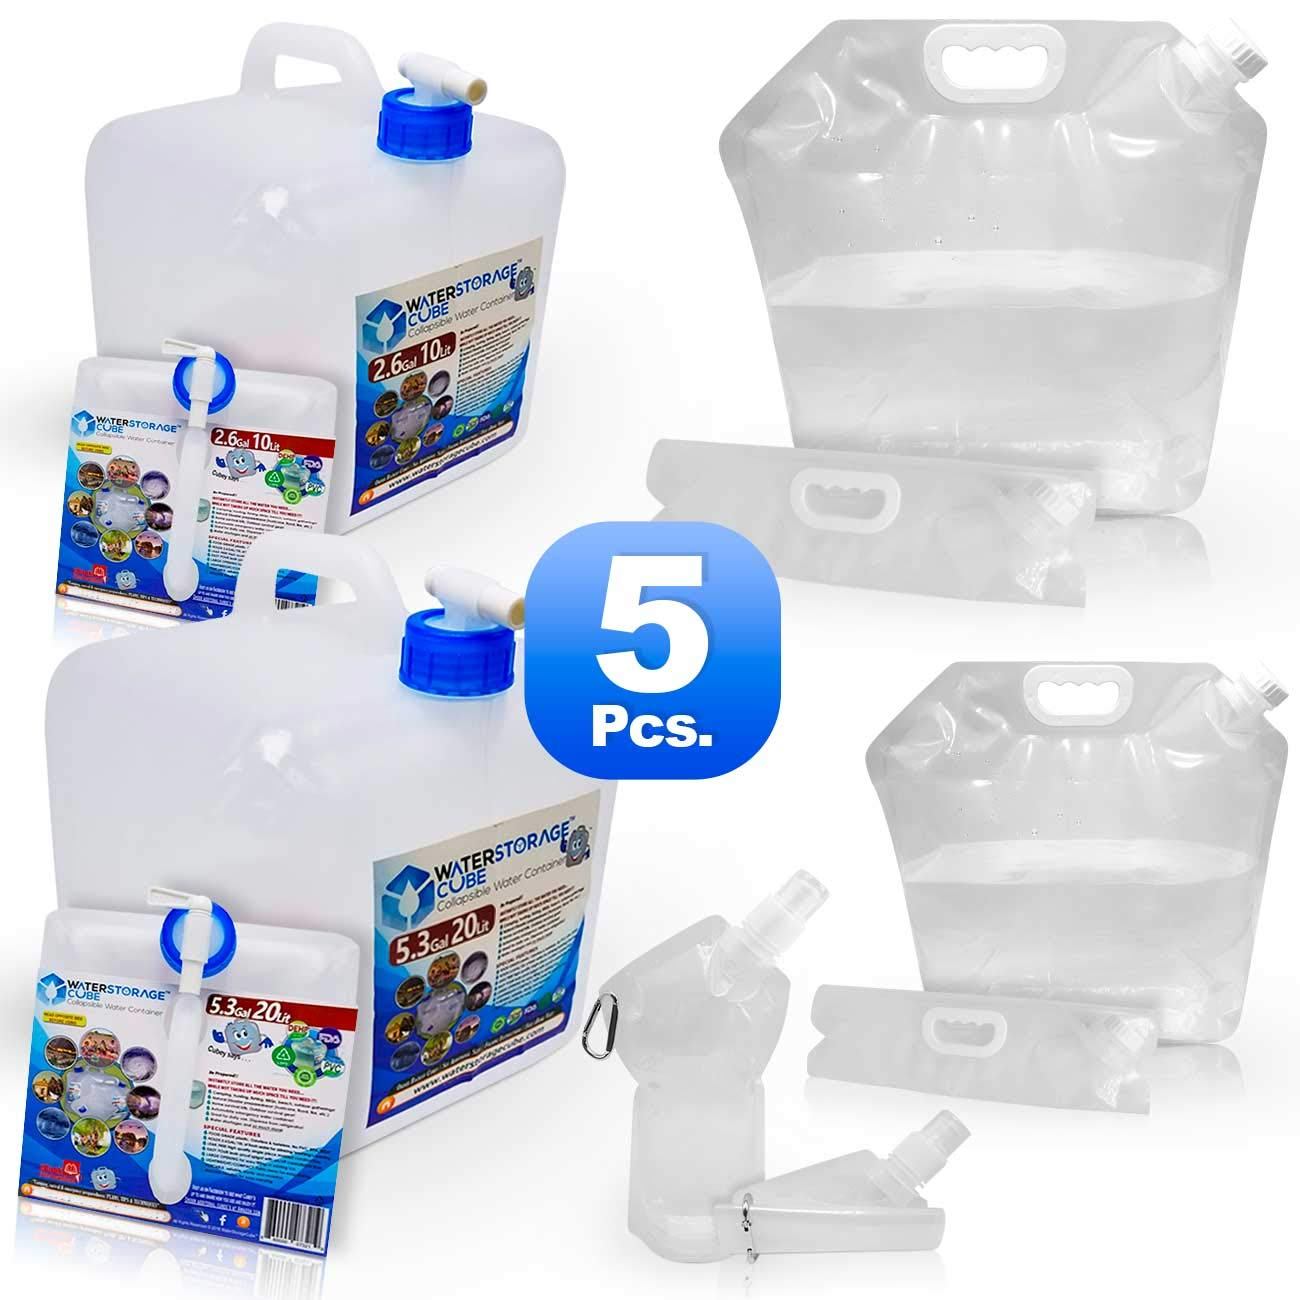 WaterStorageCube Collapsible Water Containers No BPA Odorless Camping Drink Storage Carrier Bag & Jug for Outdoors Hiking Backpack Portable No-Leak Freezable (2 Cube 10L+20L, 2 Bag 5L+10L, 1 Btl 25oz) by WaterStorageCube